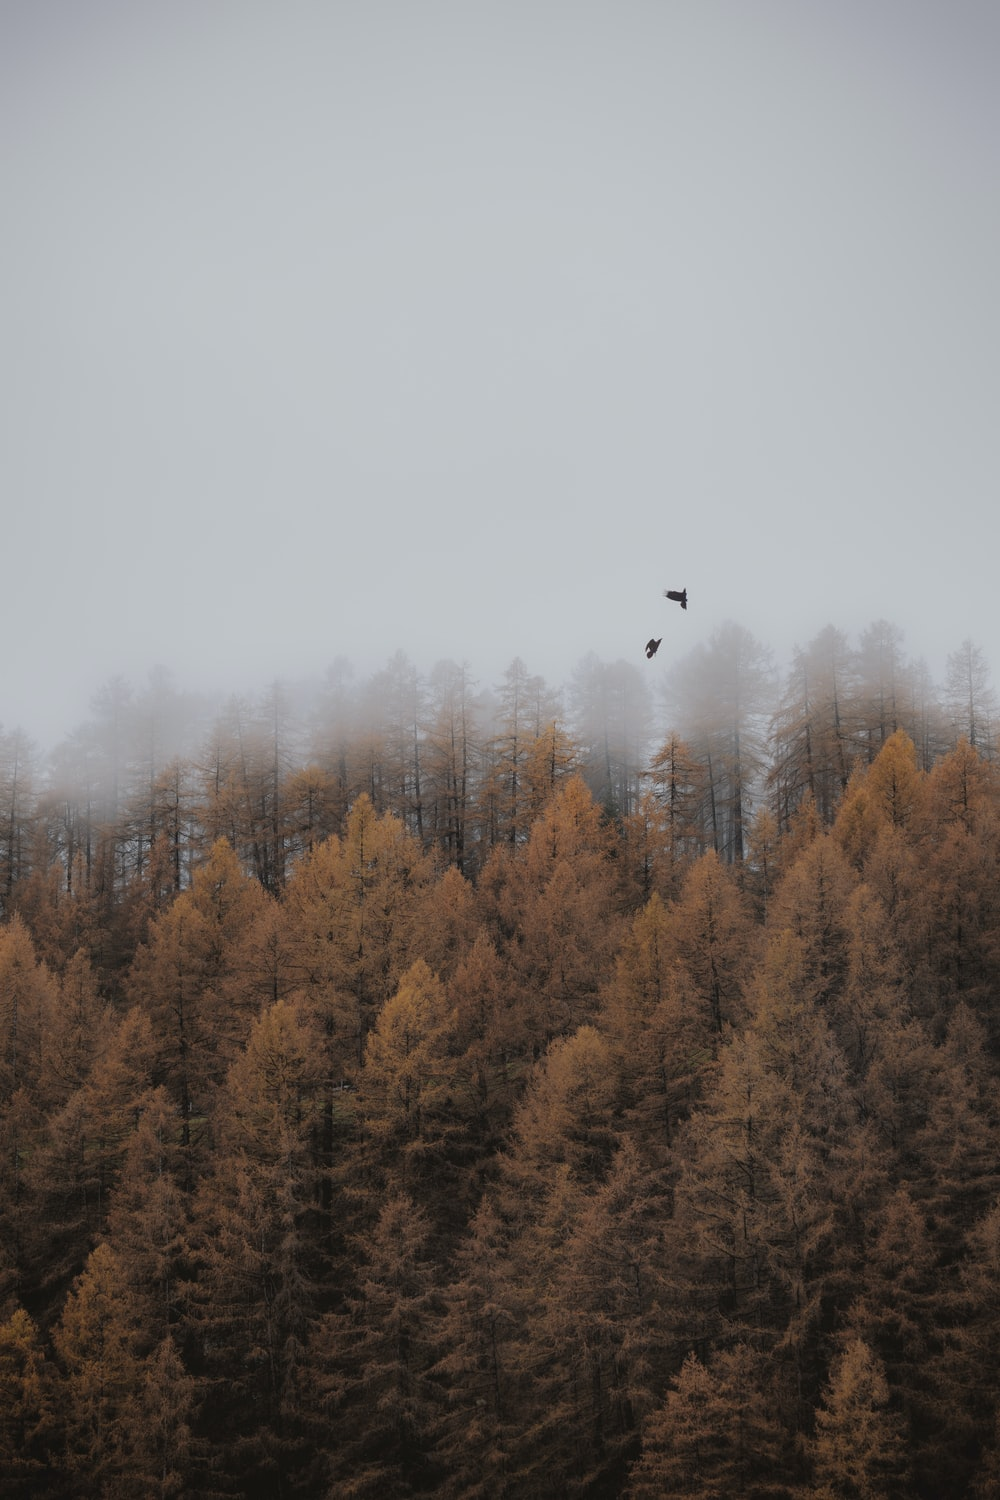 aerial photo of brown trees under cloudy sky